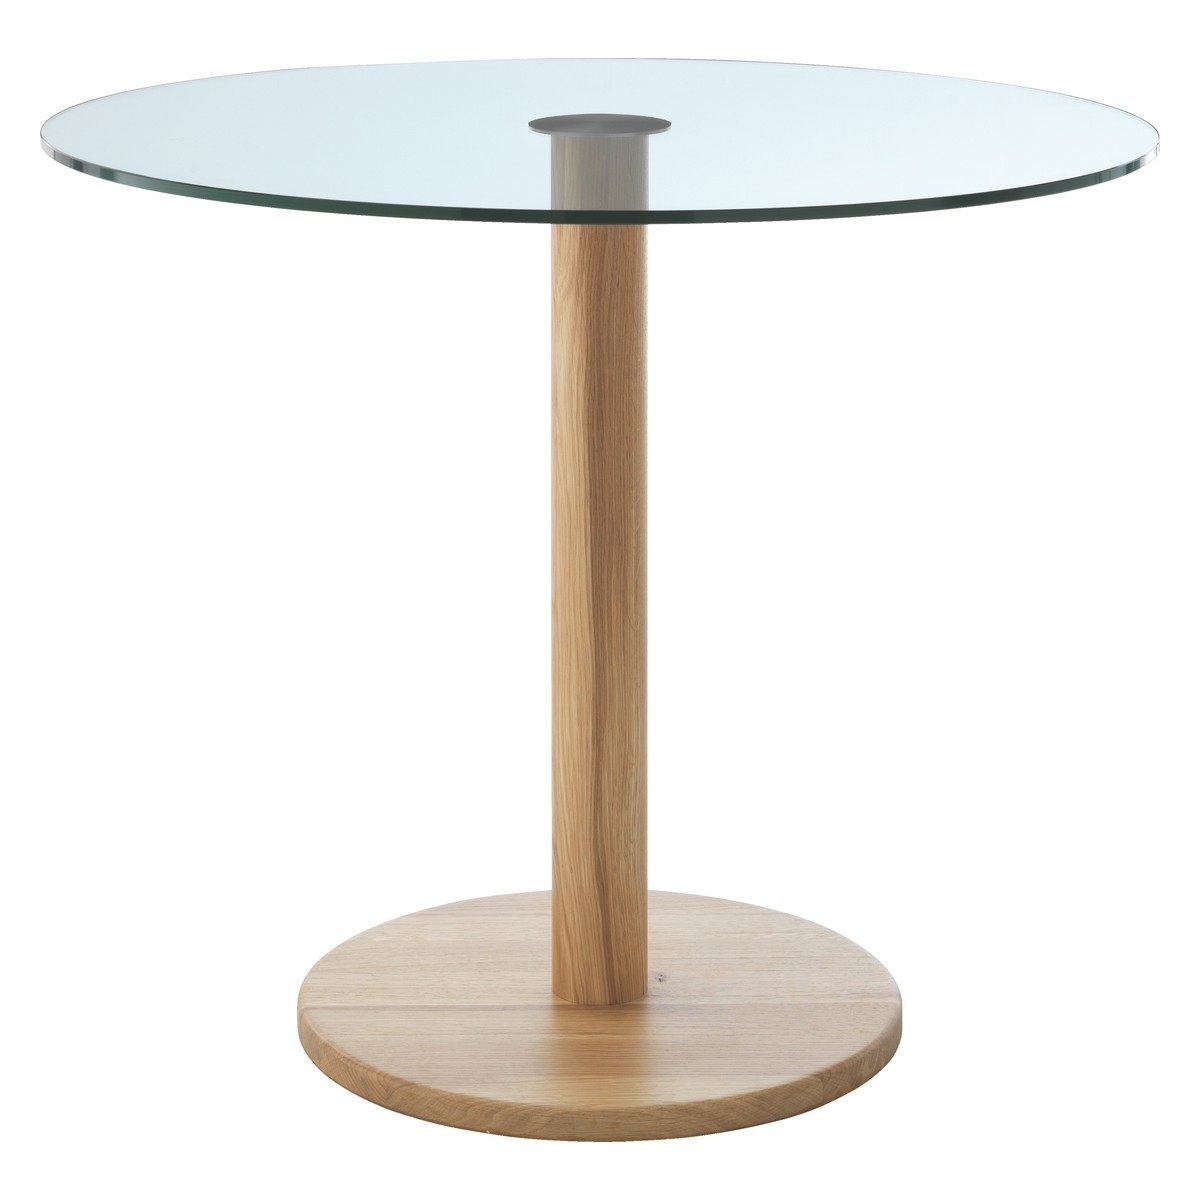 Buy Now At Habitat Uk With Latest Round Glass And Oak Dining Tables (View 5 of 25)